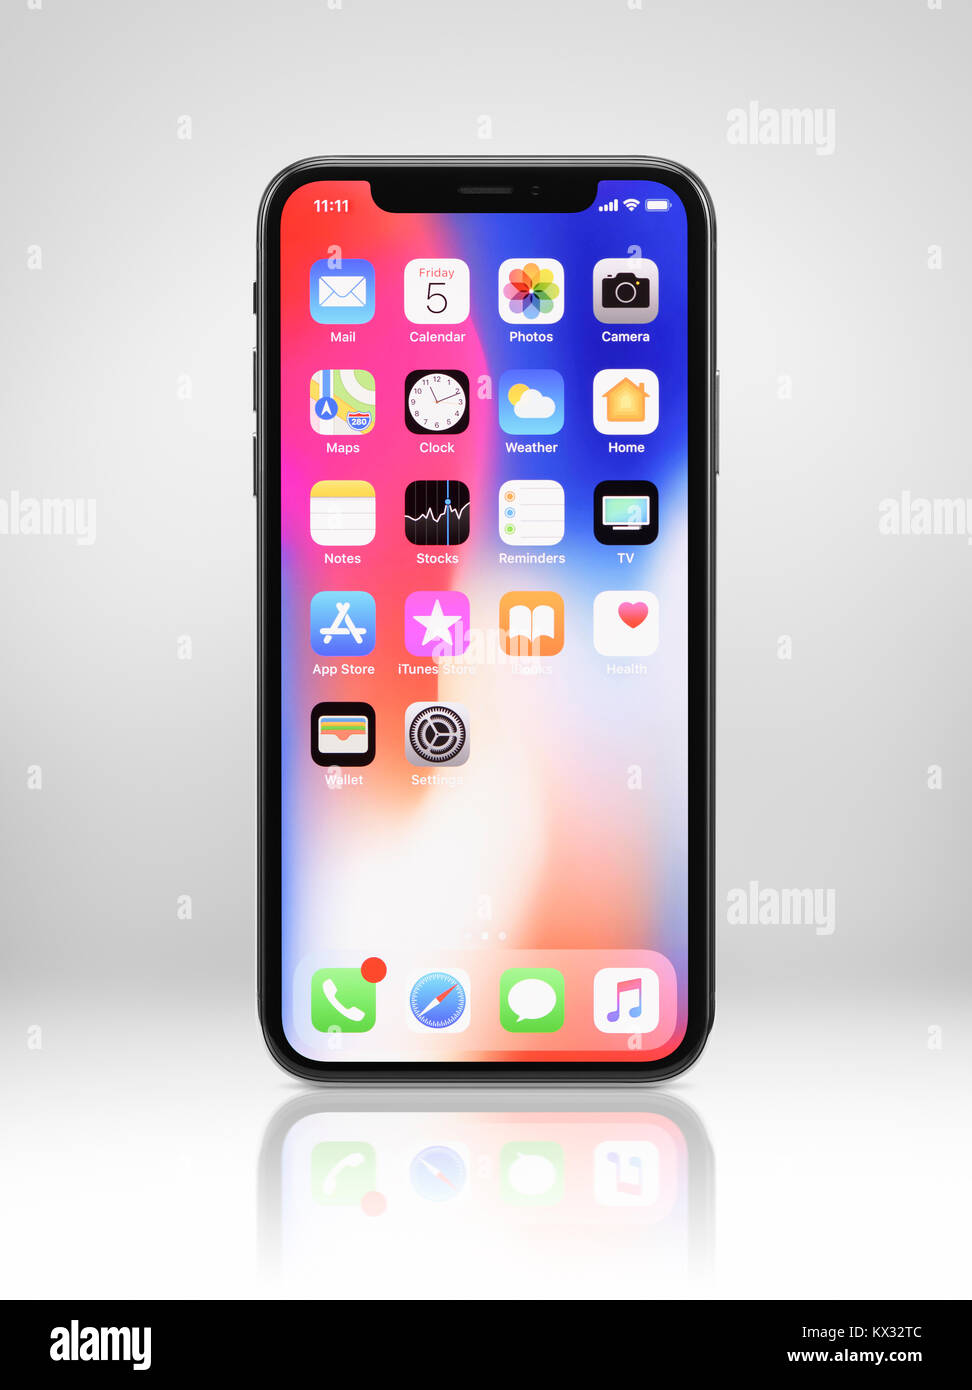 Apple iPhone X, large screen smartphone, with colorful desktop on its display. The phone is isolated on light gray - Stock Image